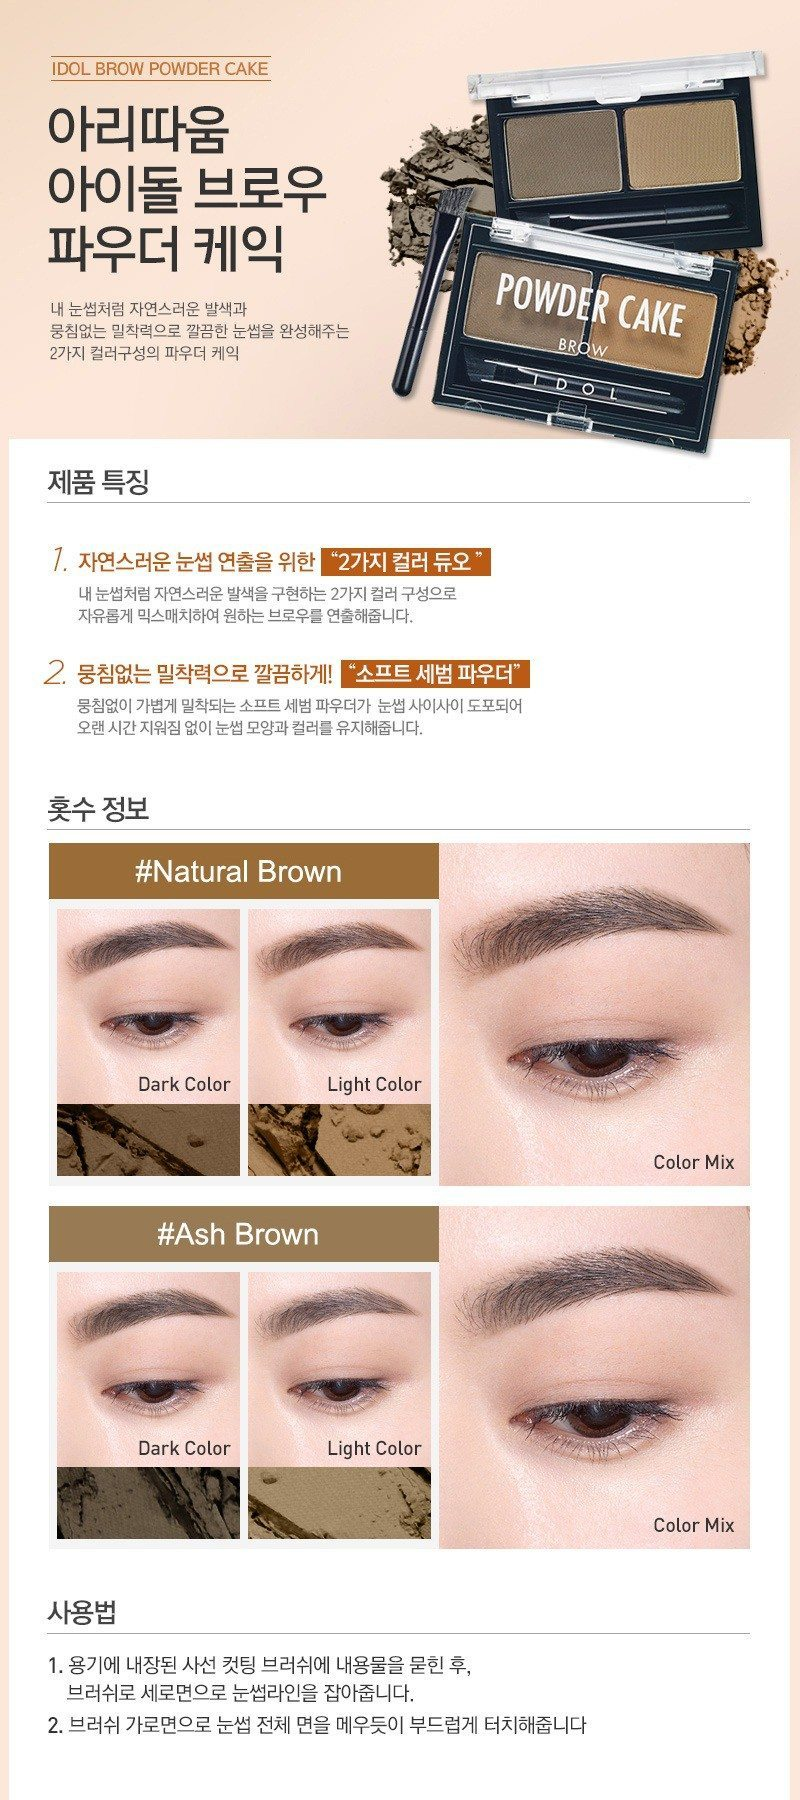 Aritaum IDOL Brow Powder Cake 4g  korean cosmetic makeup product online shop malaysia  brunei philippines1